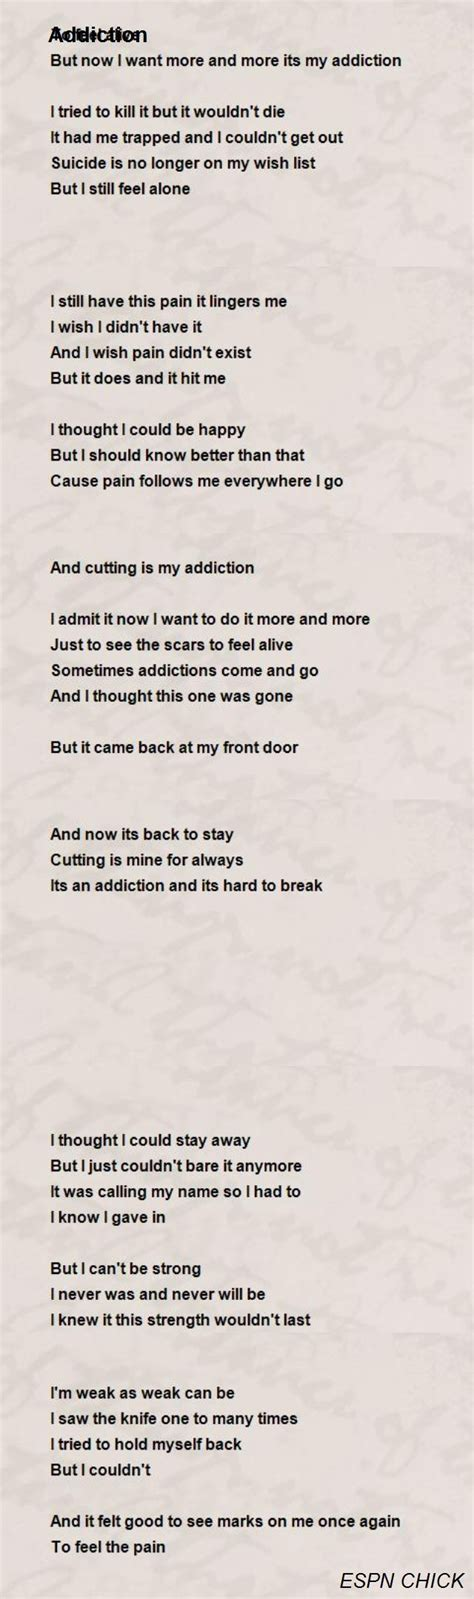 tion poems family this is the second poem as a addiction poem by espn poem Addi